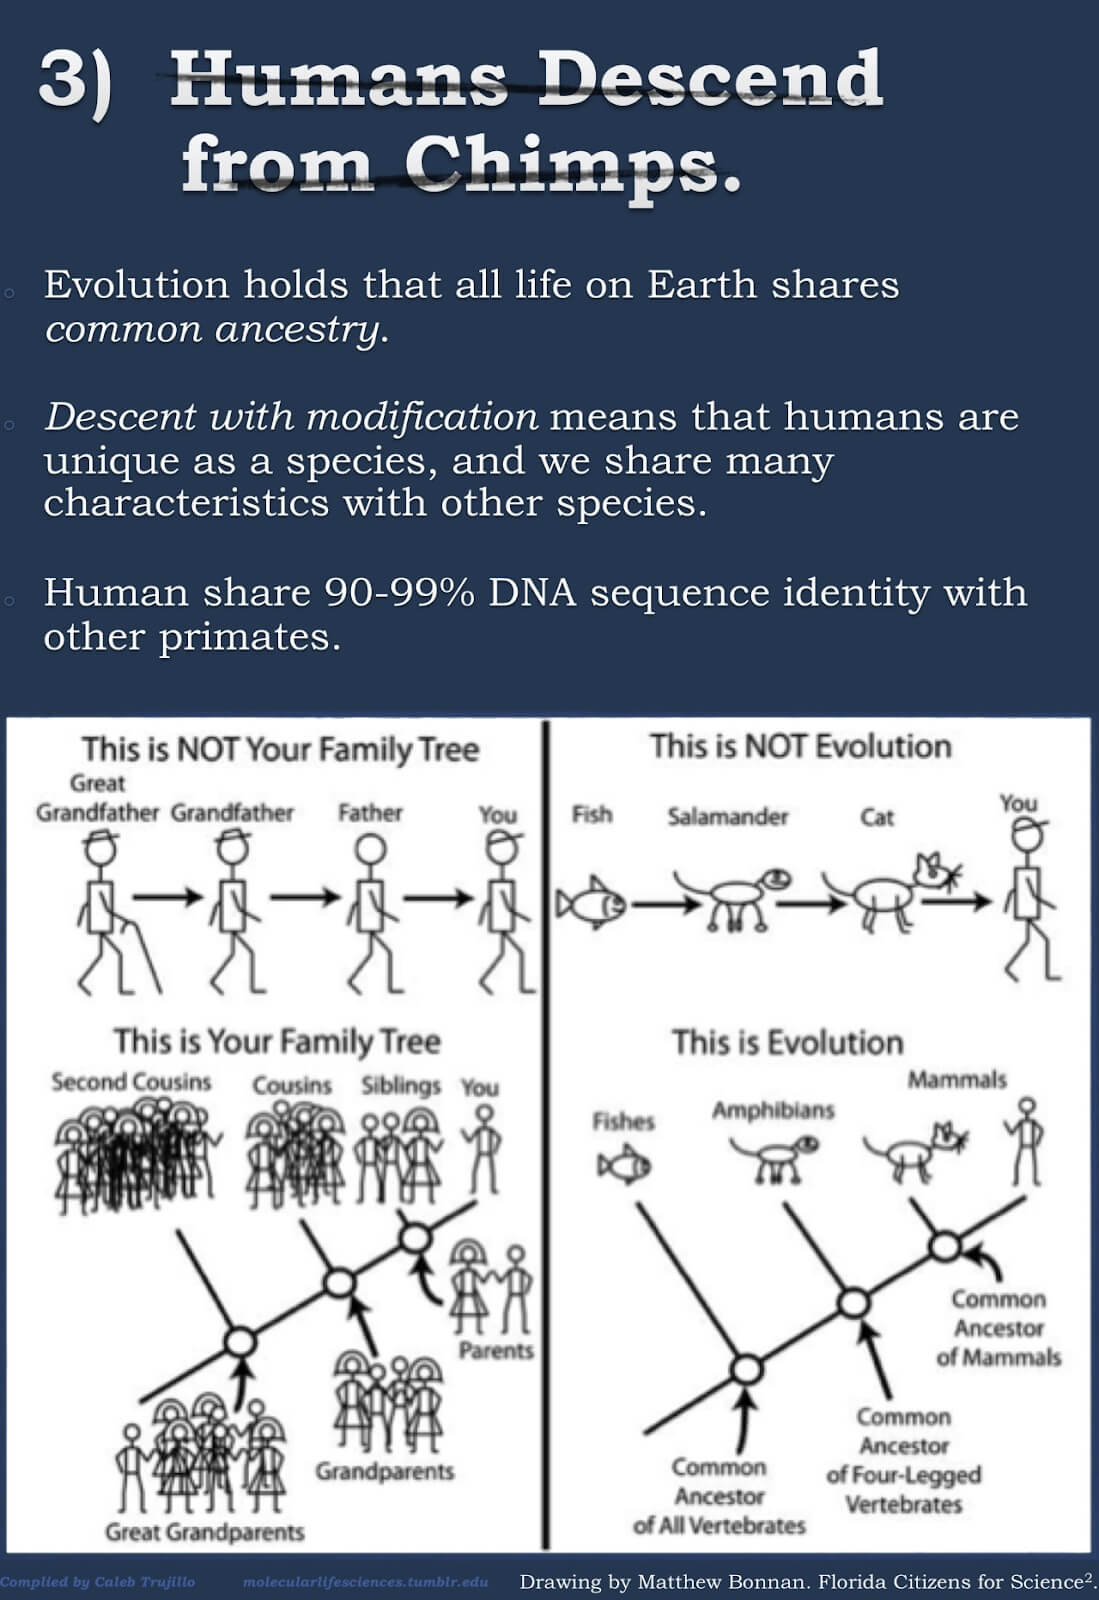 The myths about evolution3